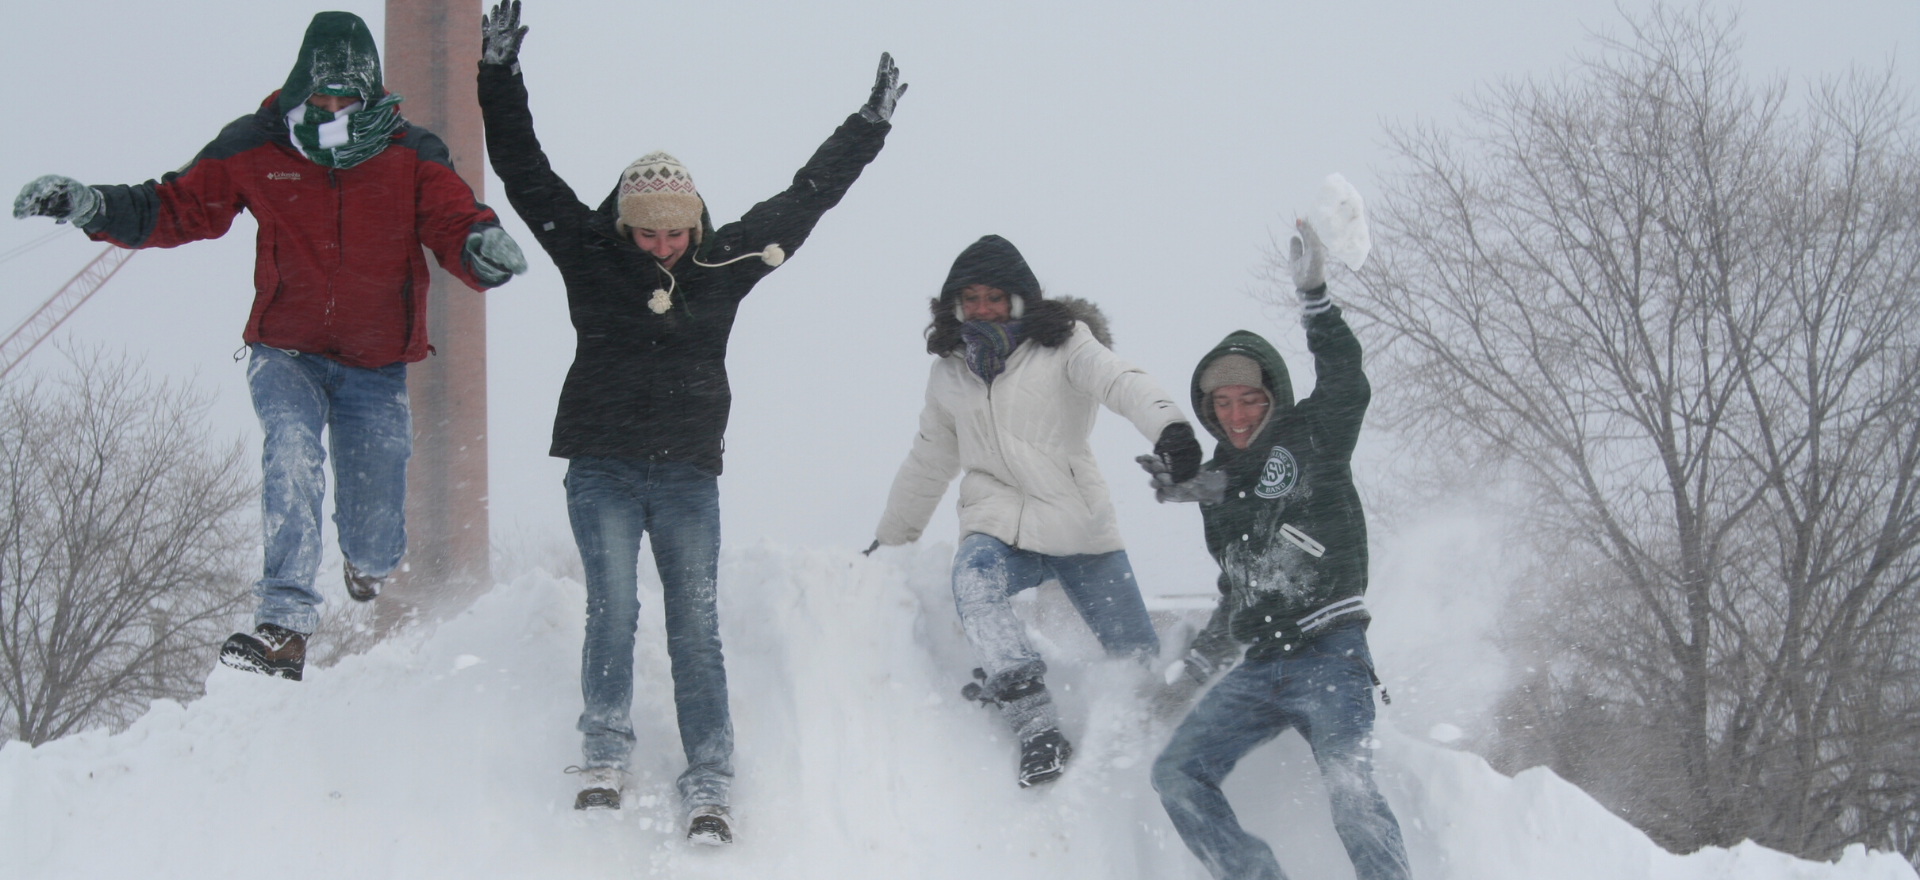 4 kids in MSU apparel jumping on a snow bank